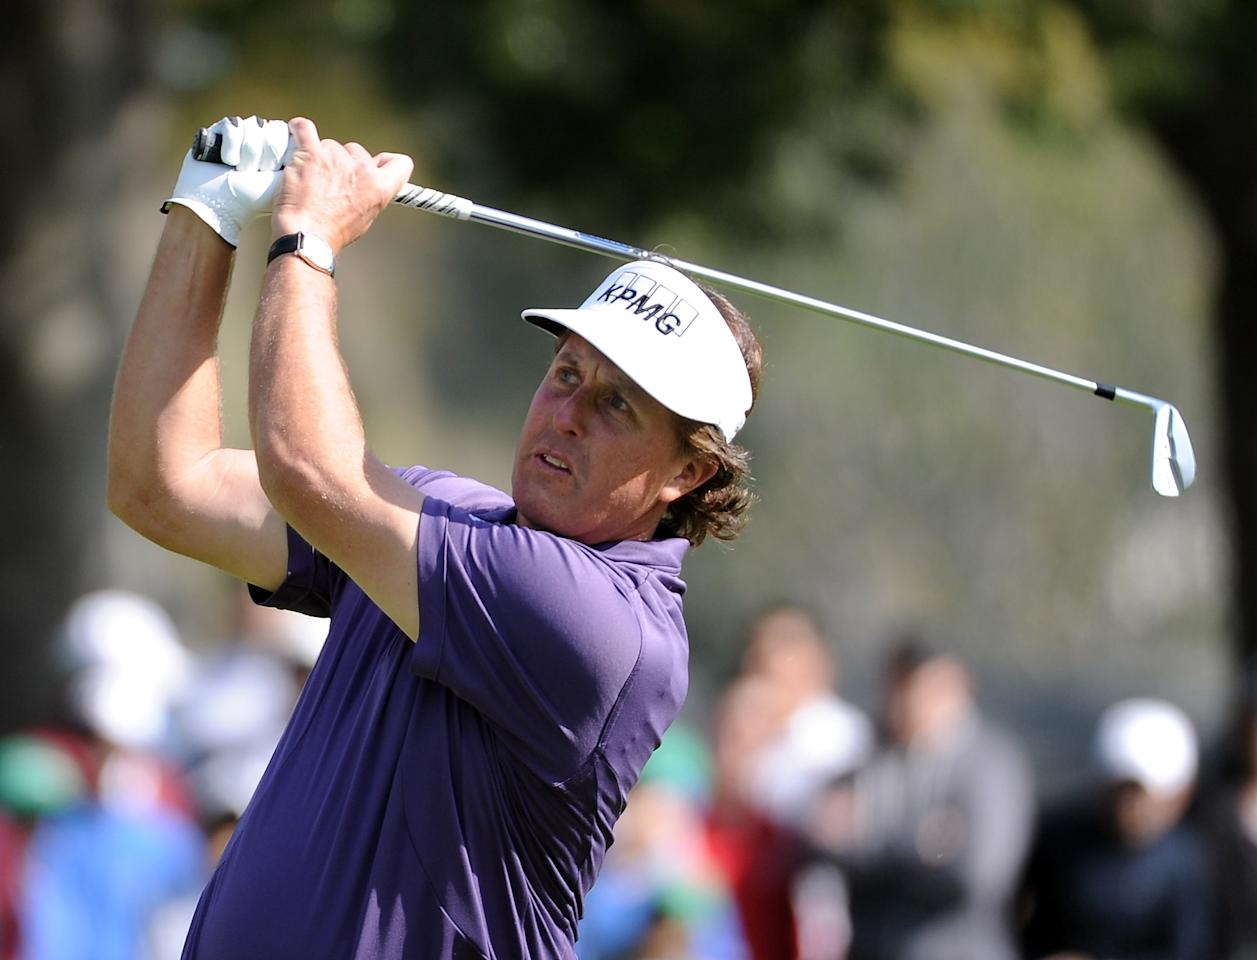 PACIFIC PALISADES, CA - FEBRUARY 18:  Phil Mickelson hits a second shot on the second hole during the third round of the Northern Trust Open at the Riviera Country Club on February 18, 2012 in Pacific Palisades, California.  (Photo by Harry How/Getty Images)